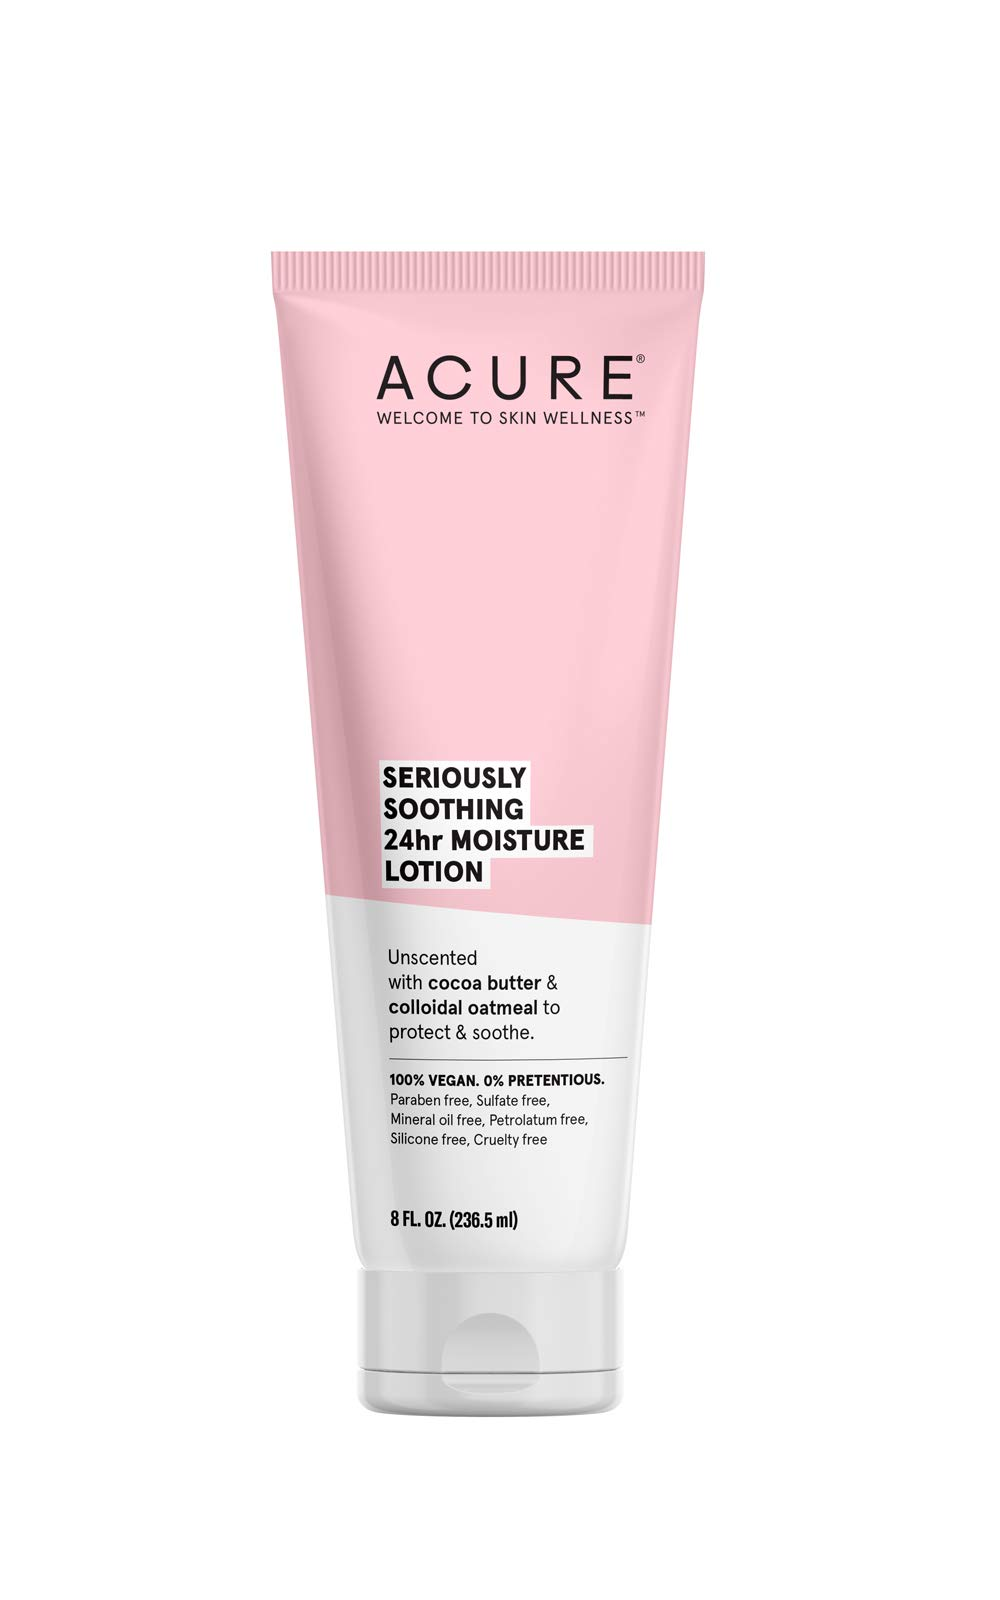 Acure Seriously Soothing 24Hr Moisture Lotion, 8 Ounce by Acure